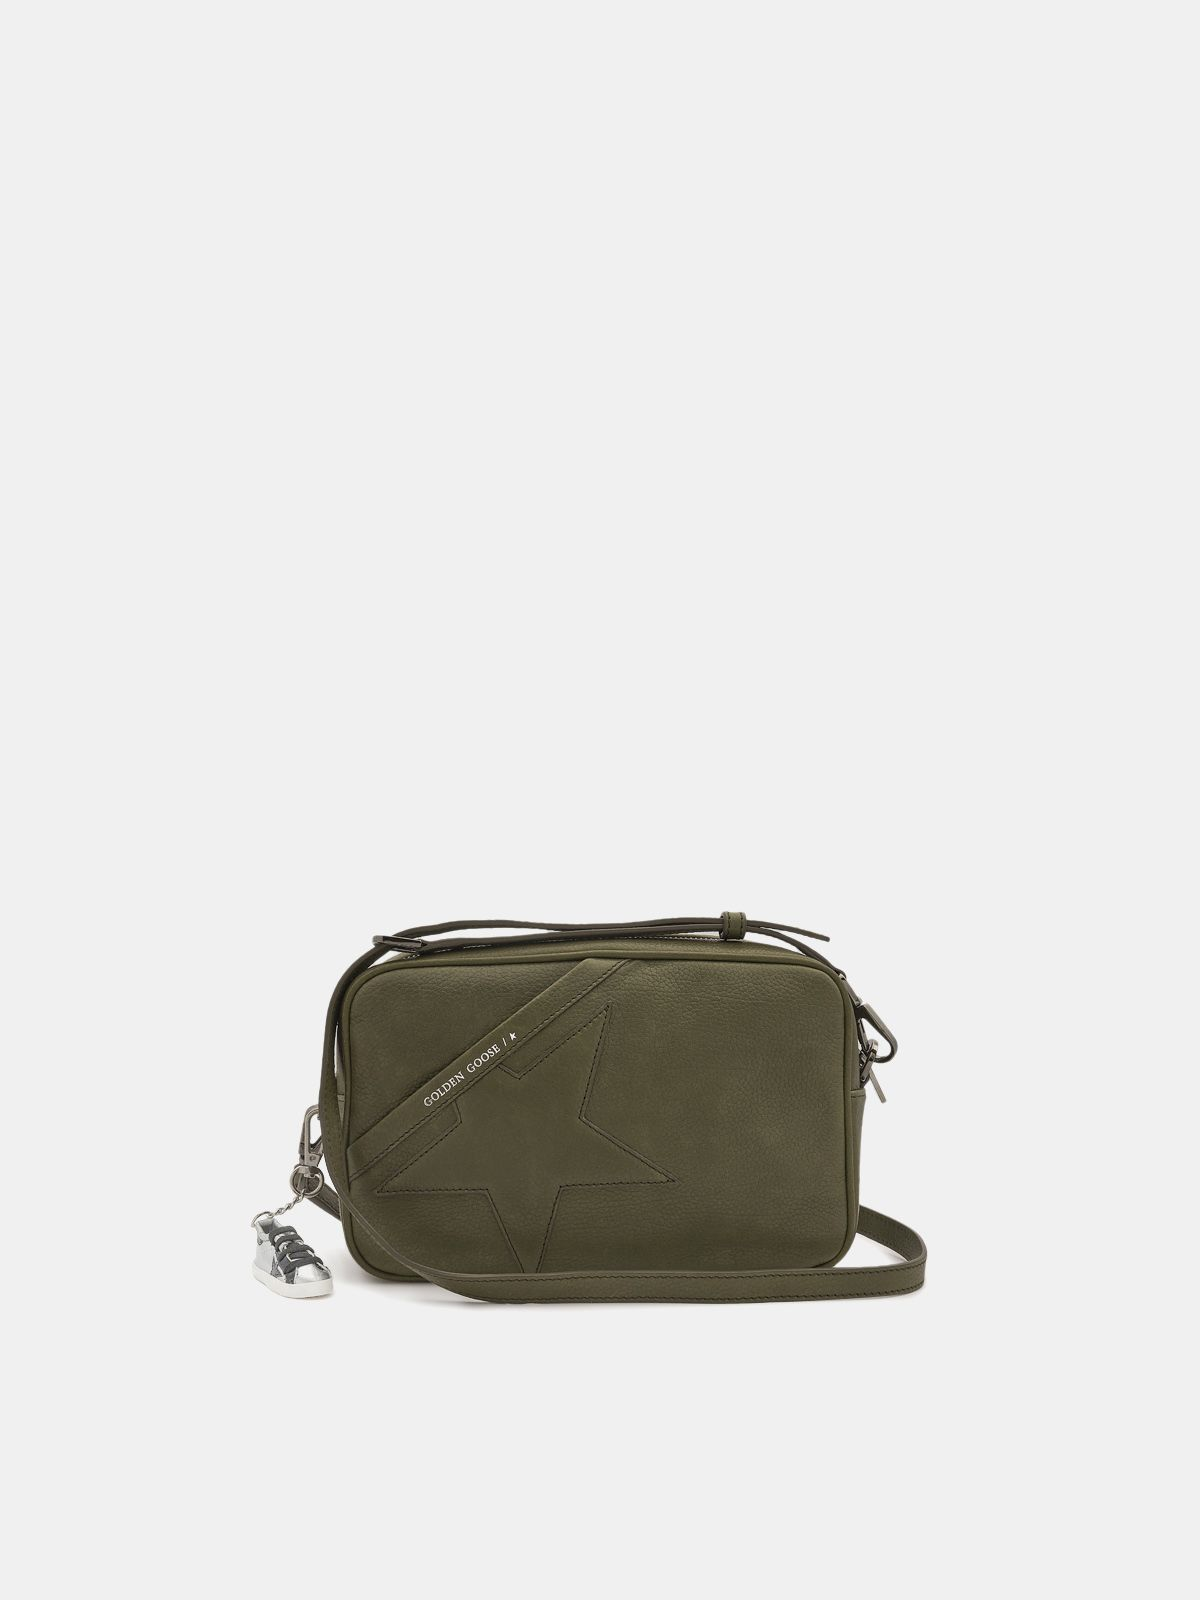 Army green Star Bag made of hammered leather